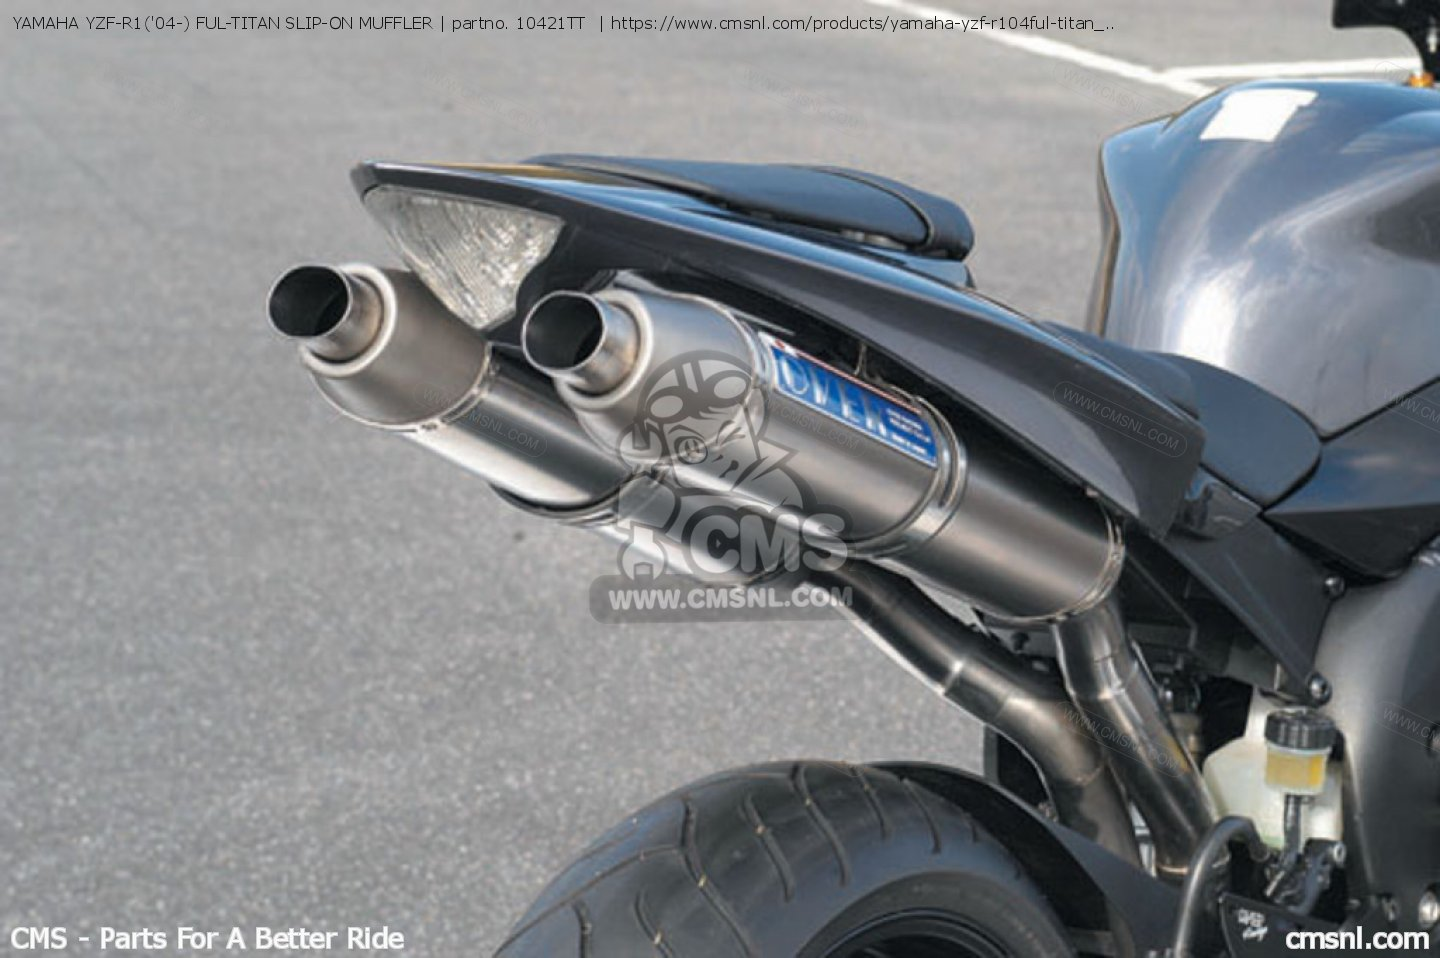 ... small image of YAMAHA YZF-R104- FUL-TITAN SLIP-ON MUFFLER